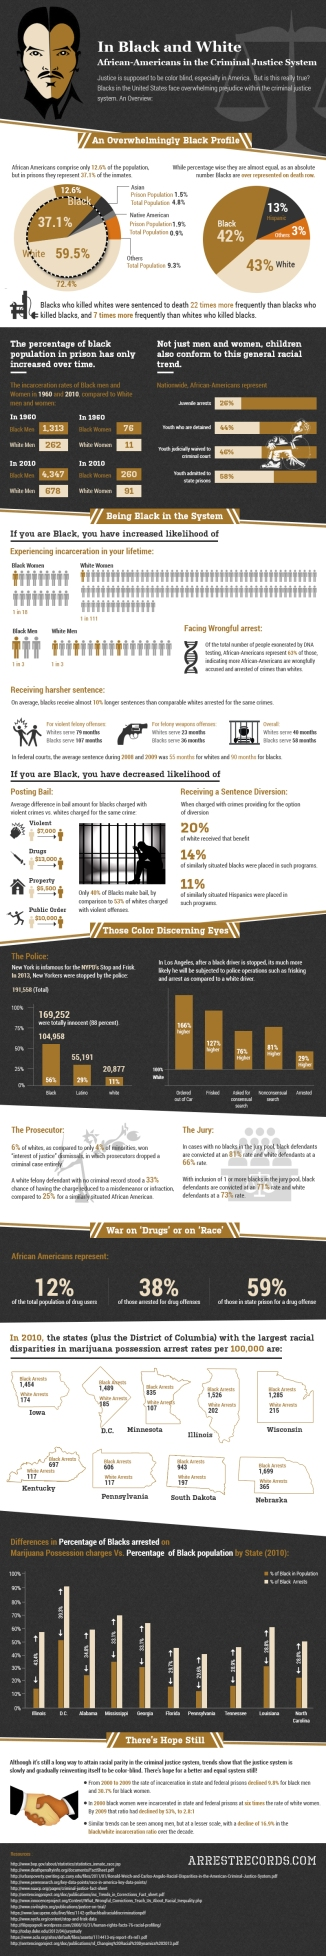 Racism in the Criminal Justice System